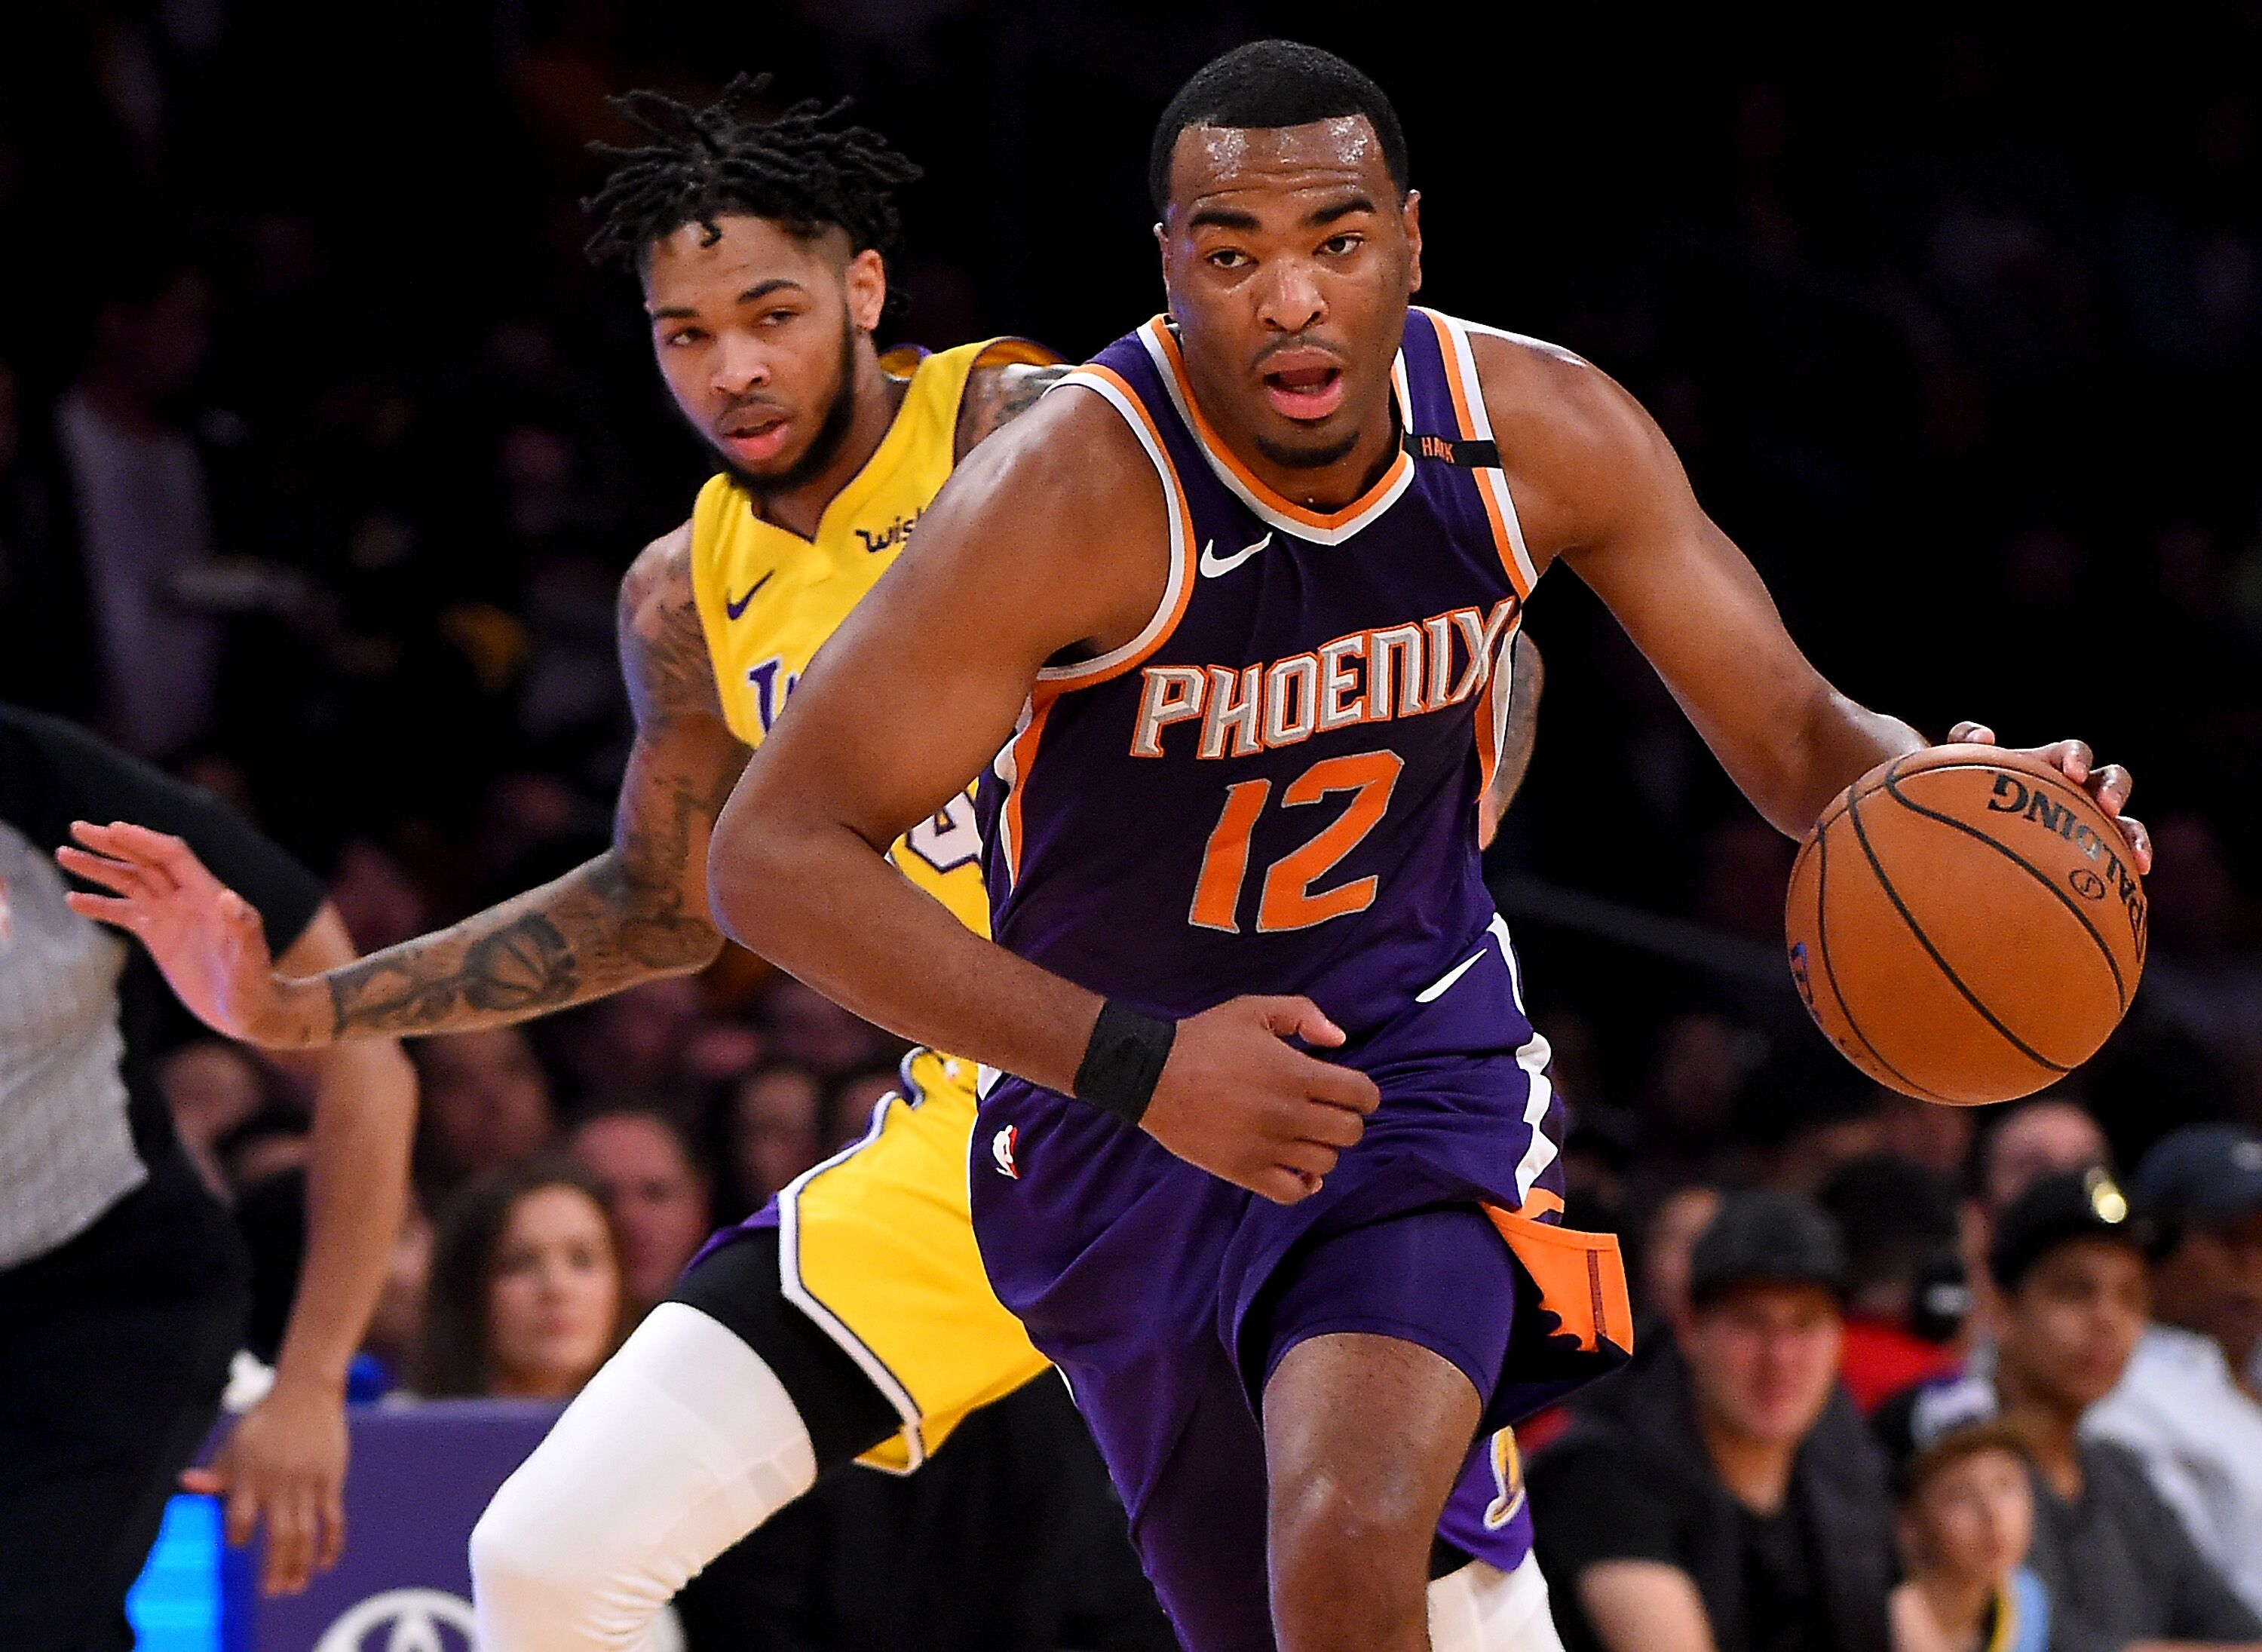 915145254-phoenix-suns-v-los-angeles-lakers.jpg